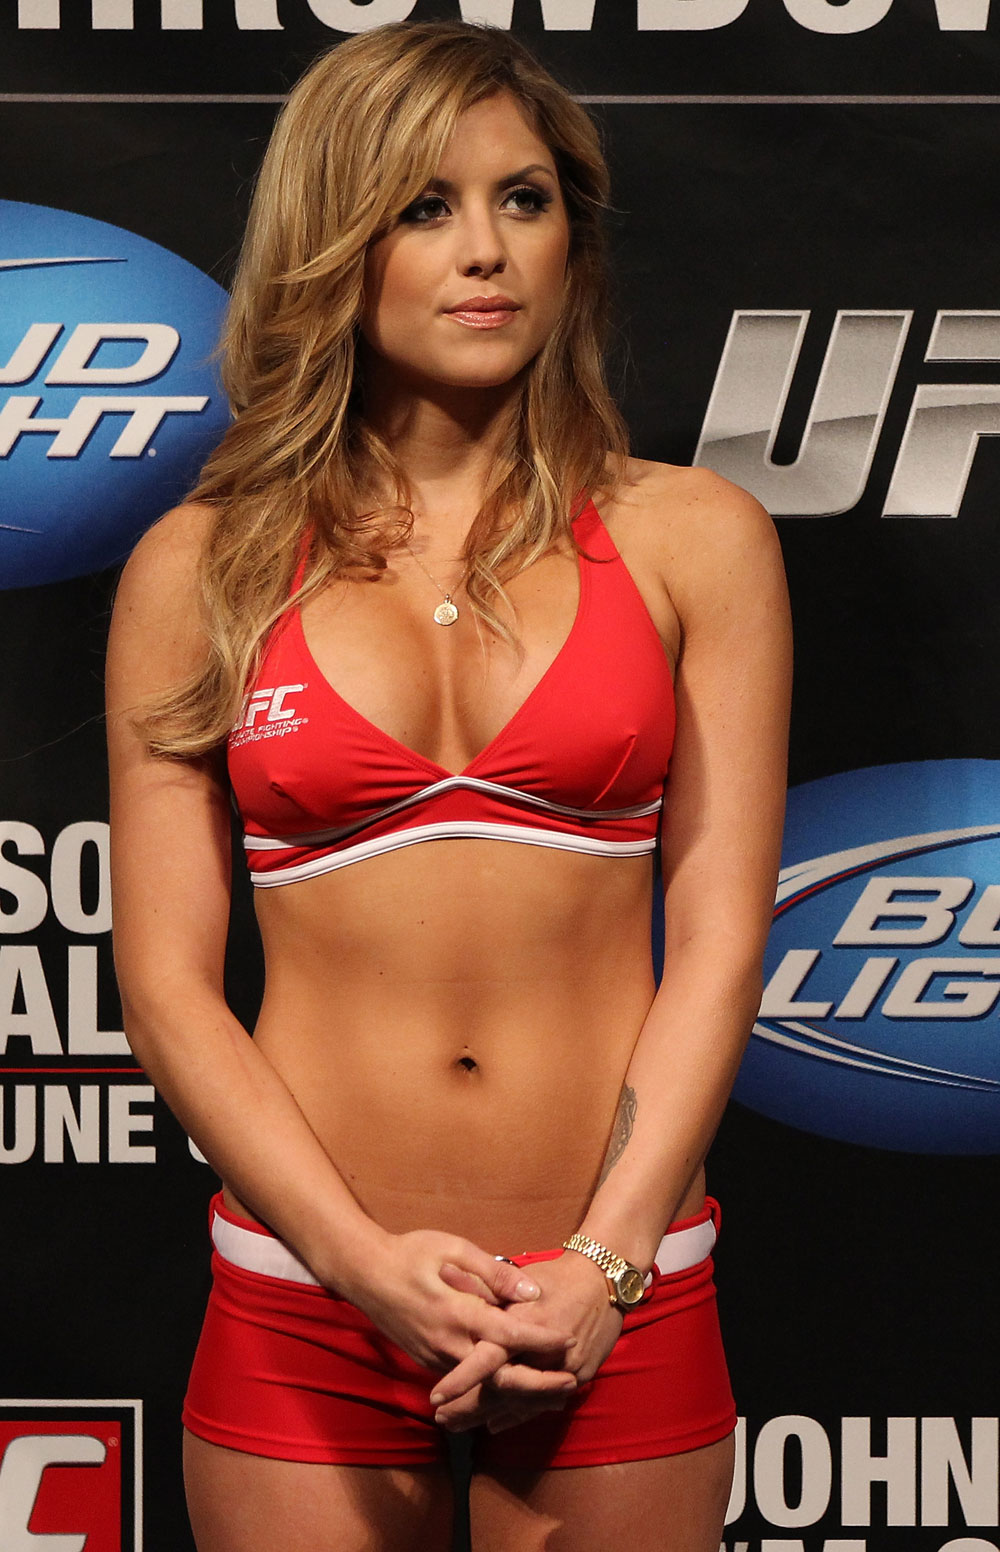 http://media.ufc.tv/photo_galleries/Archive/ufx3_weighin_024.jpg